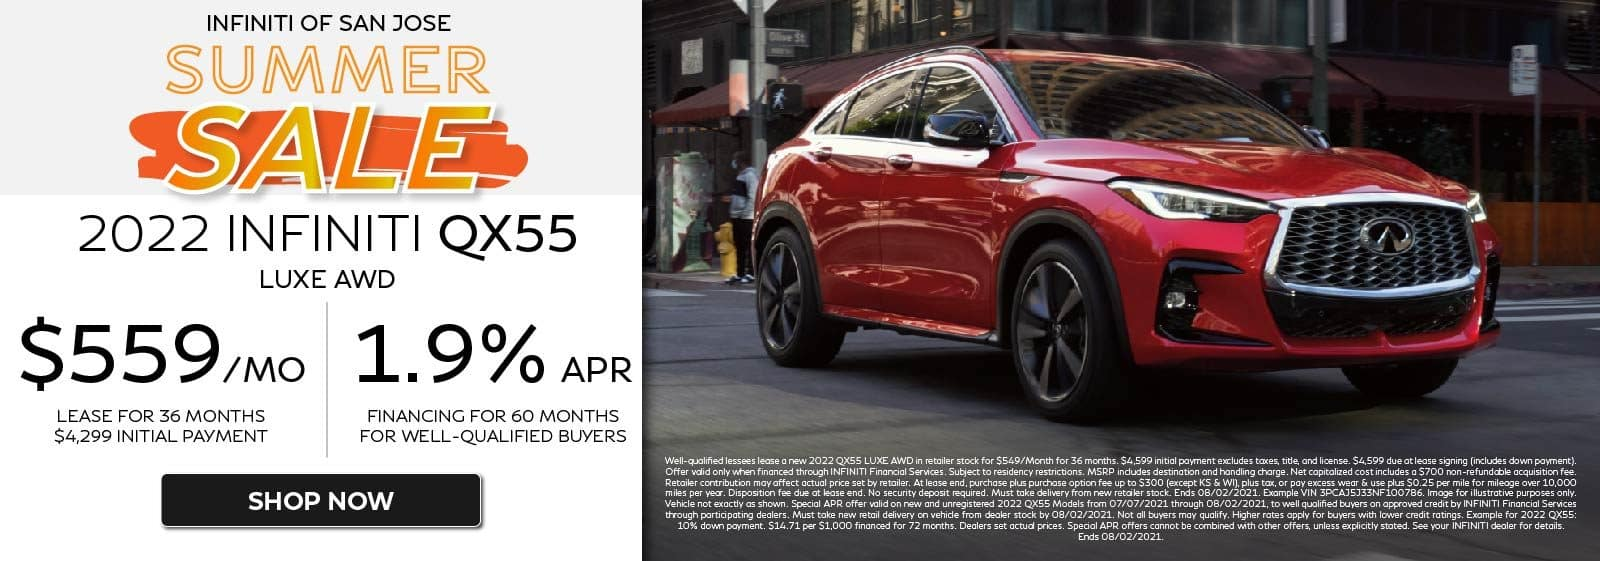 2022 QX55 LUXE AWD $559/mo for 36 months 1.9%APR